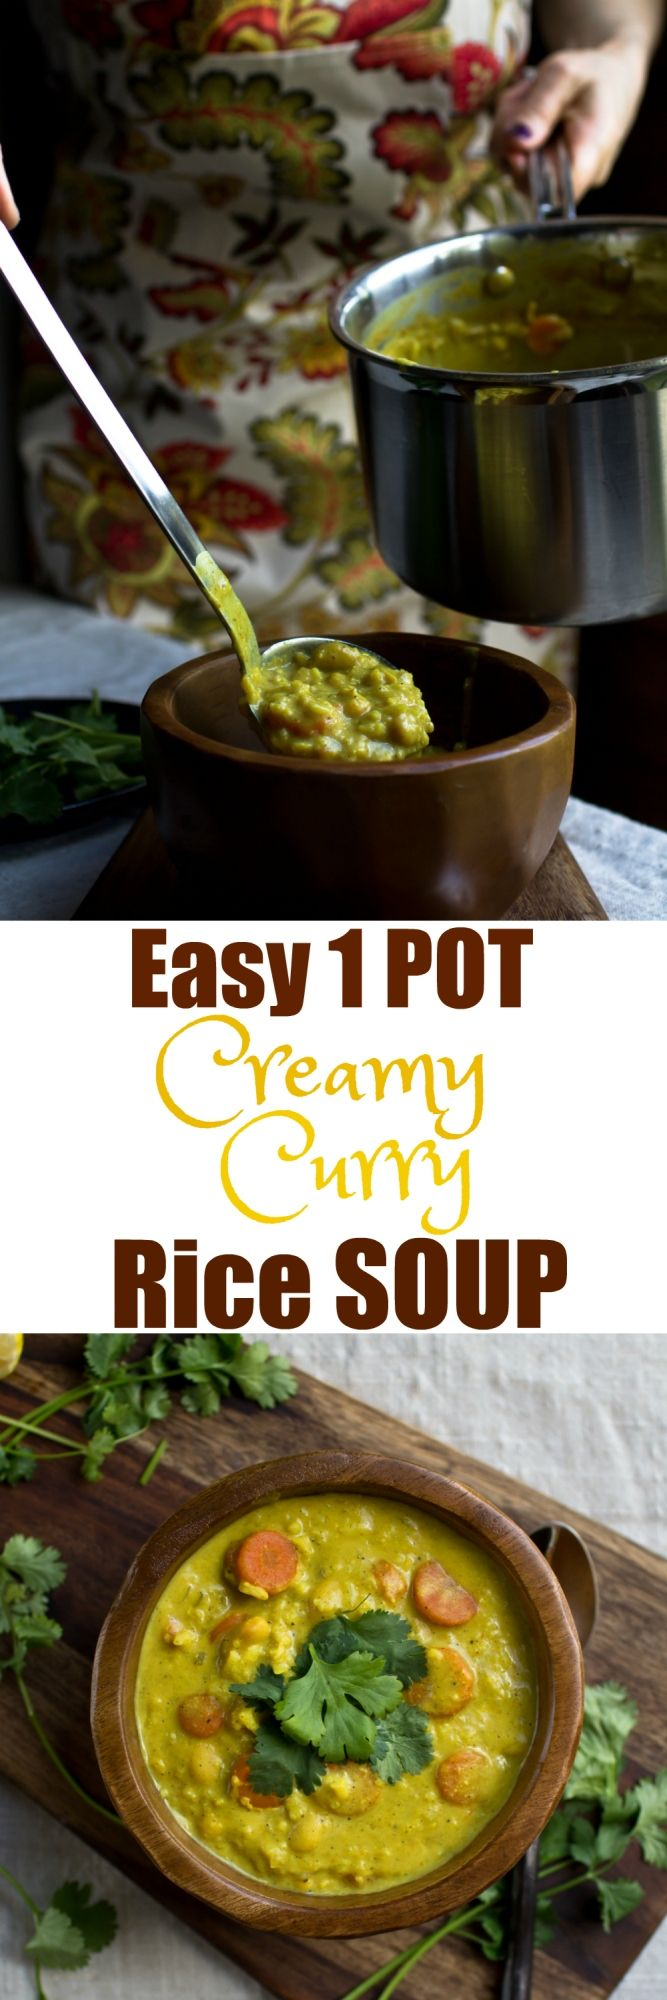 This incredible vegan 1 Pot Creamy Curry Rice Soup is so hearty, filling and made with all whole plant-based ingredients. It's not only healthy, it is downright comfort food. So creamy, it's hard to believe it is dairy-free and oil-free! It's even better the next day! via @thevegan8